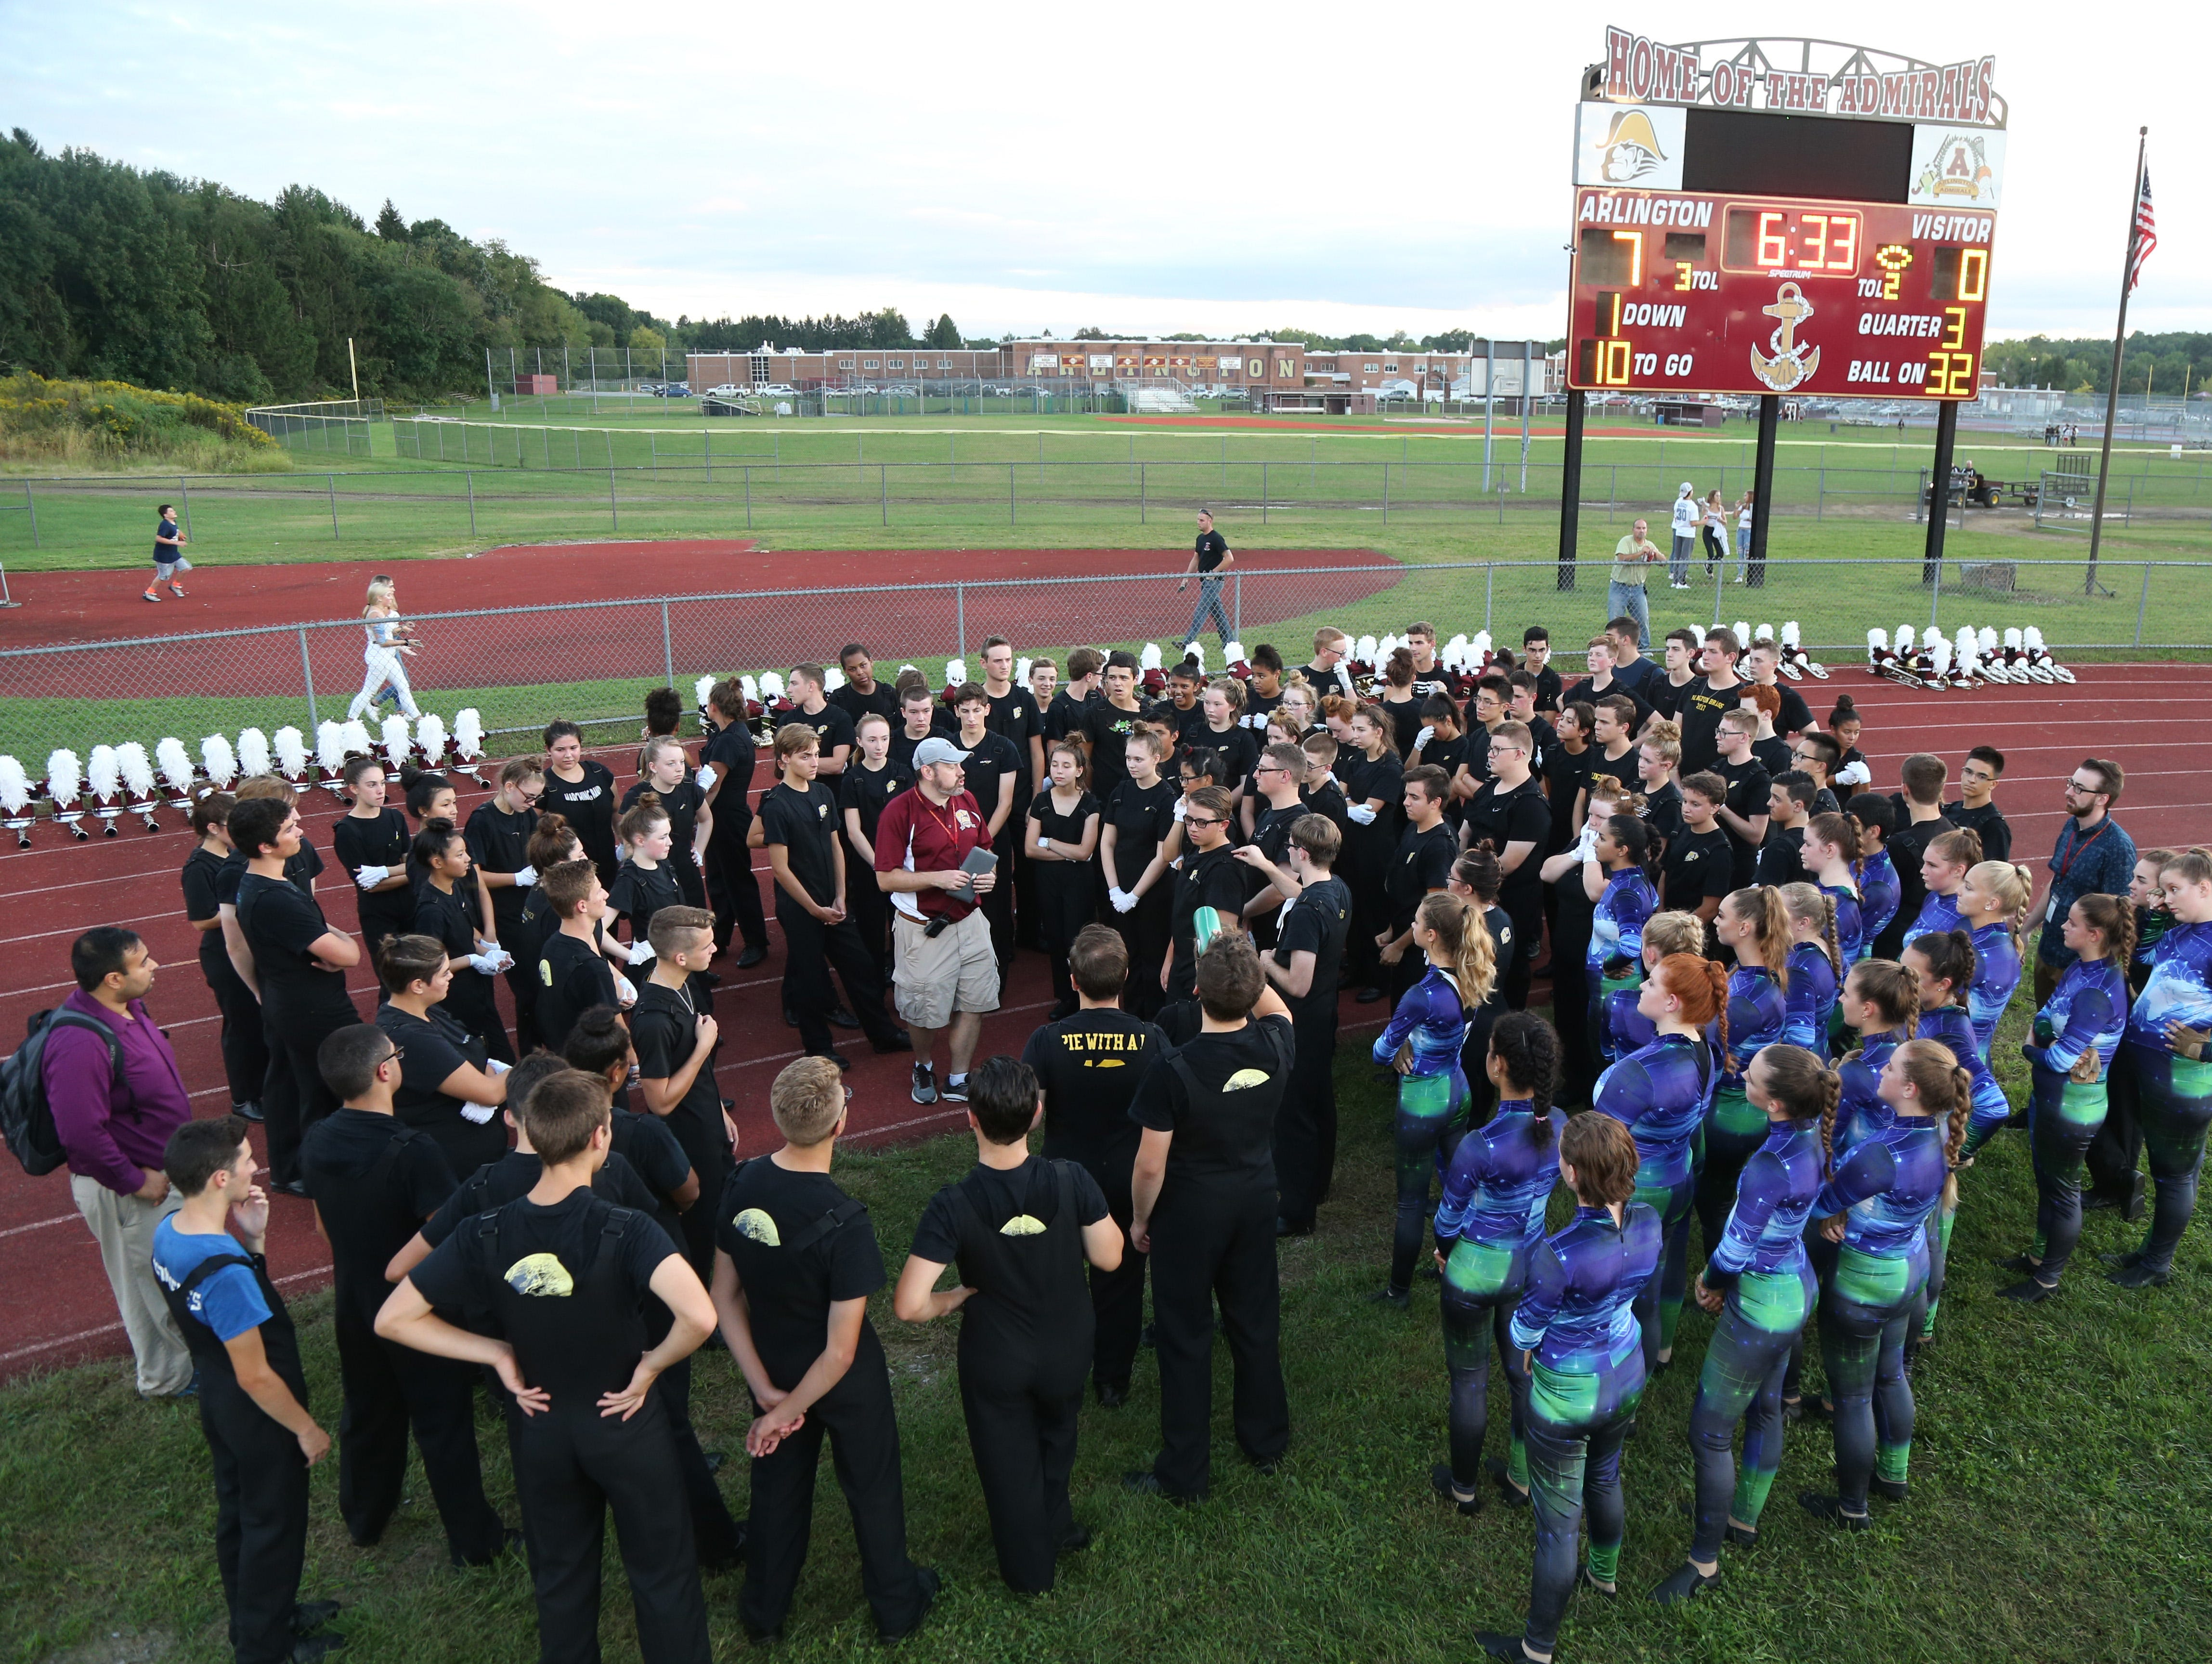 Arlington's marching band director Darrell Keech speaks to the band after performing at Friday's game between Arlington and John Jay in Freedom Plains on Sept 14, 2018.